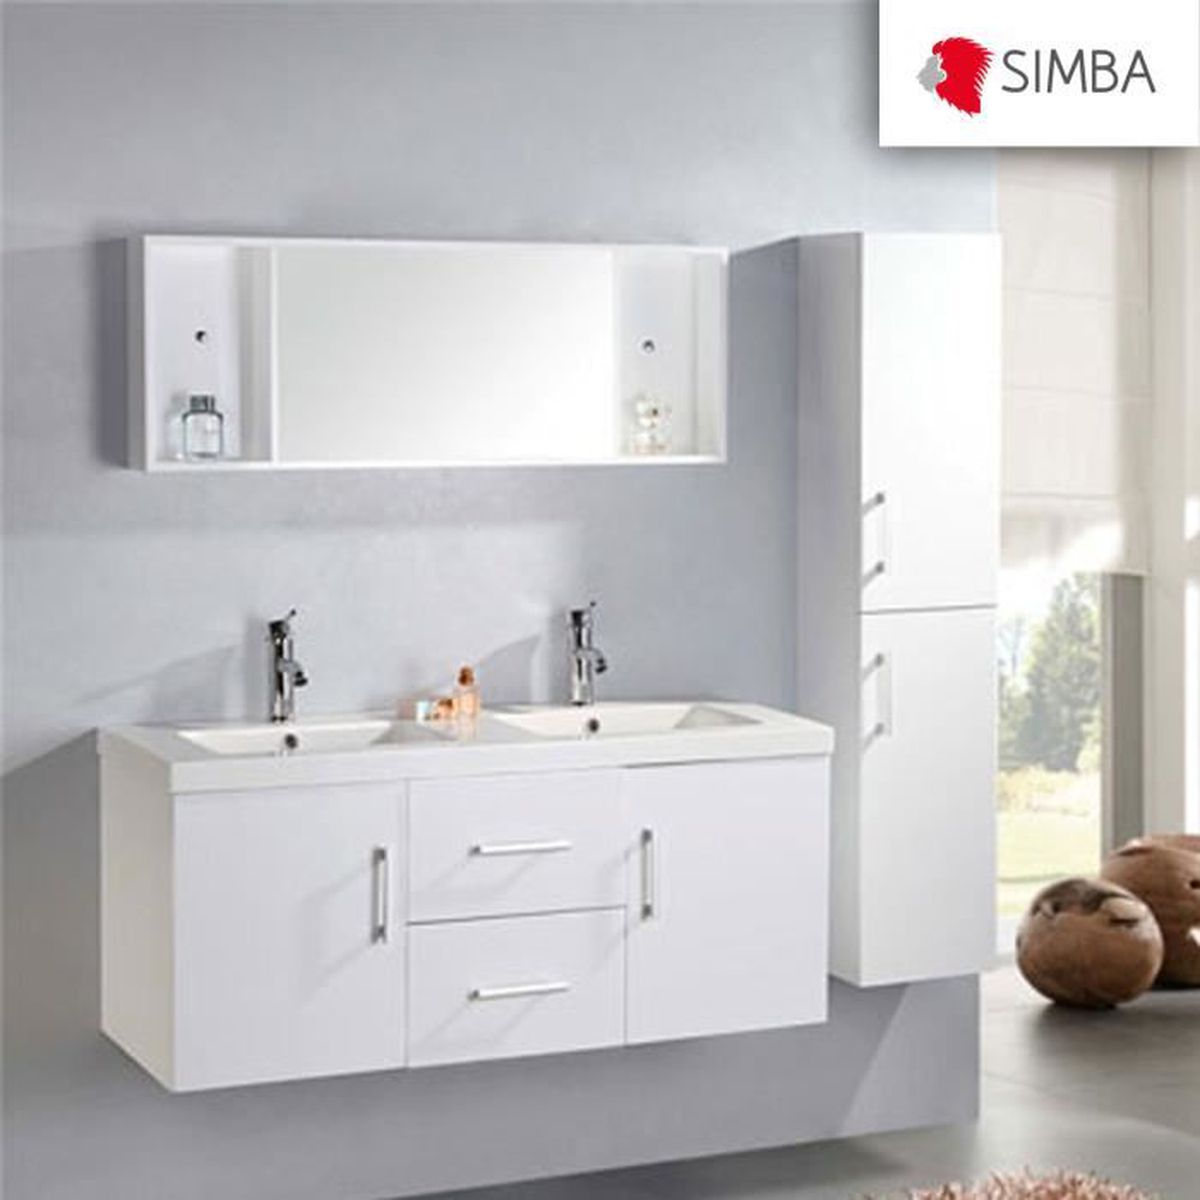 meuble salle de bain 120 cm blanc colonne vasque robinetterie w malibu ensemble comme dans la. Black Bedroom Furniture Sets. Home Design Ideas